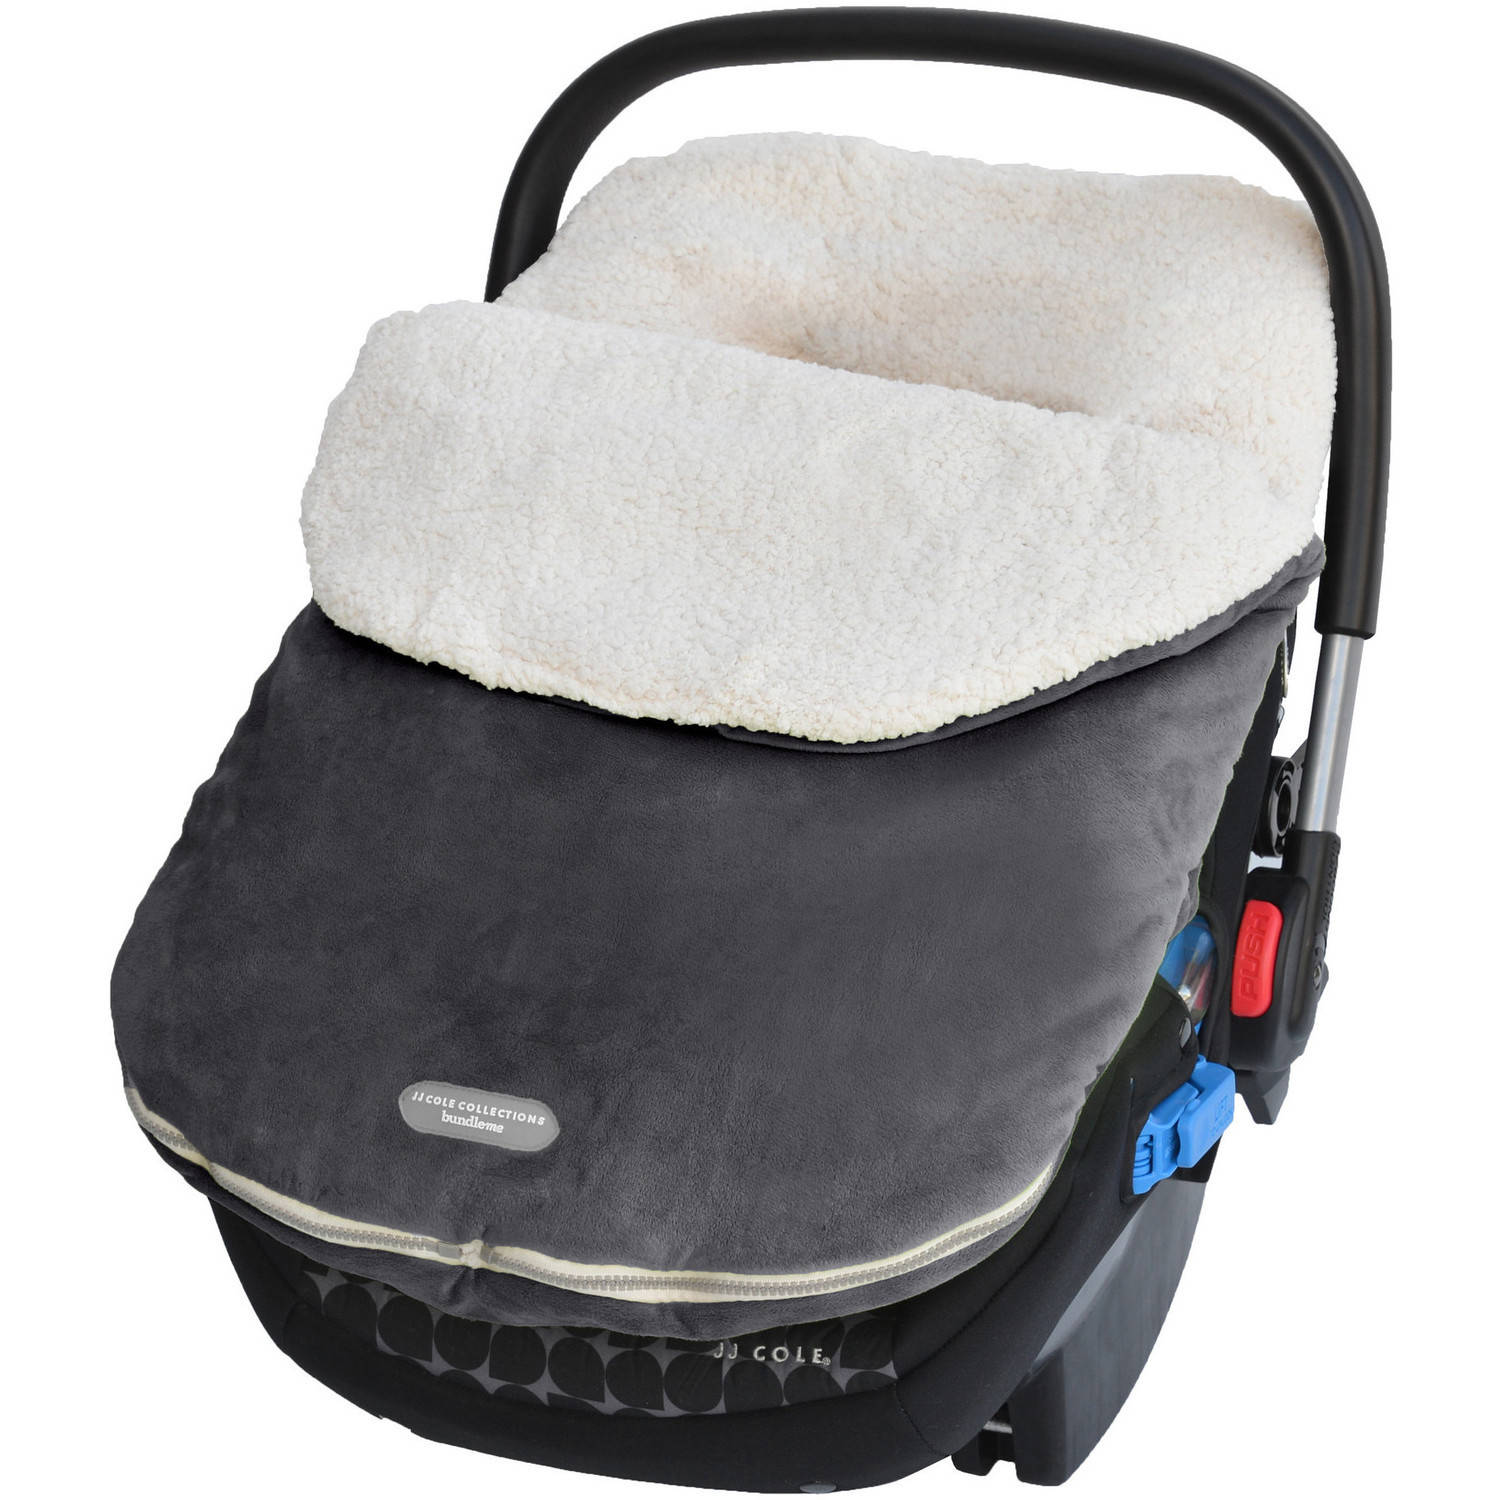 Jj Cole Car Seat Cover Canada Reviews